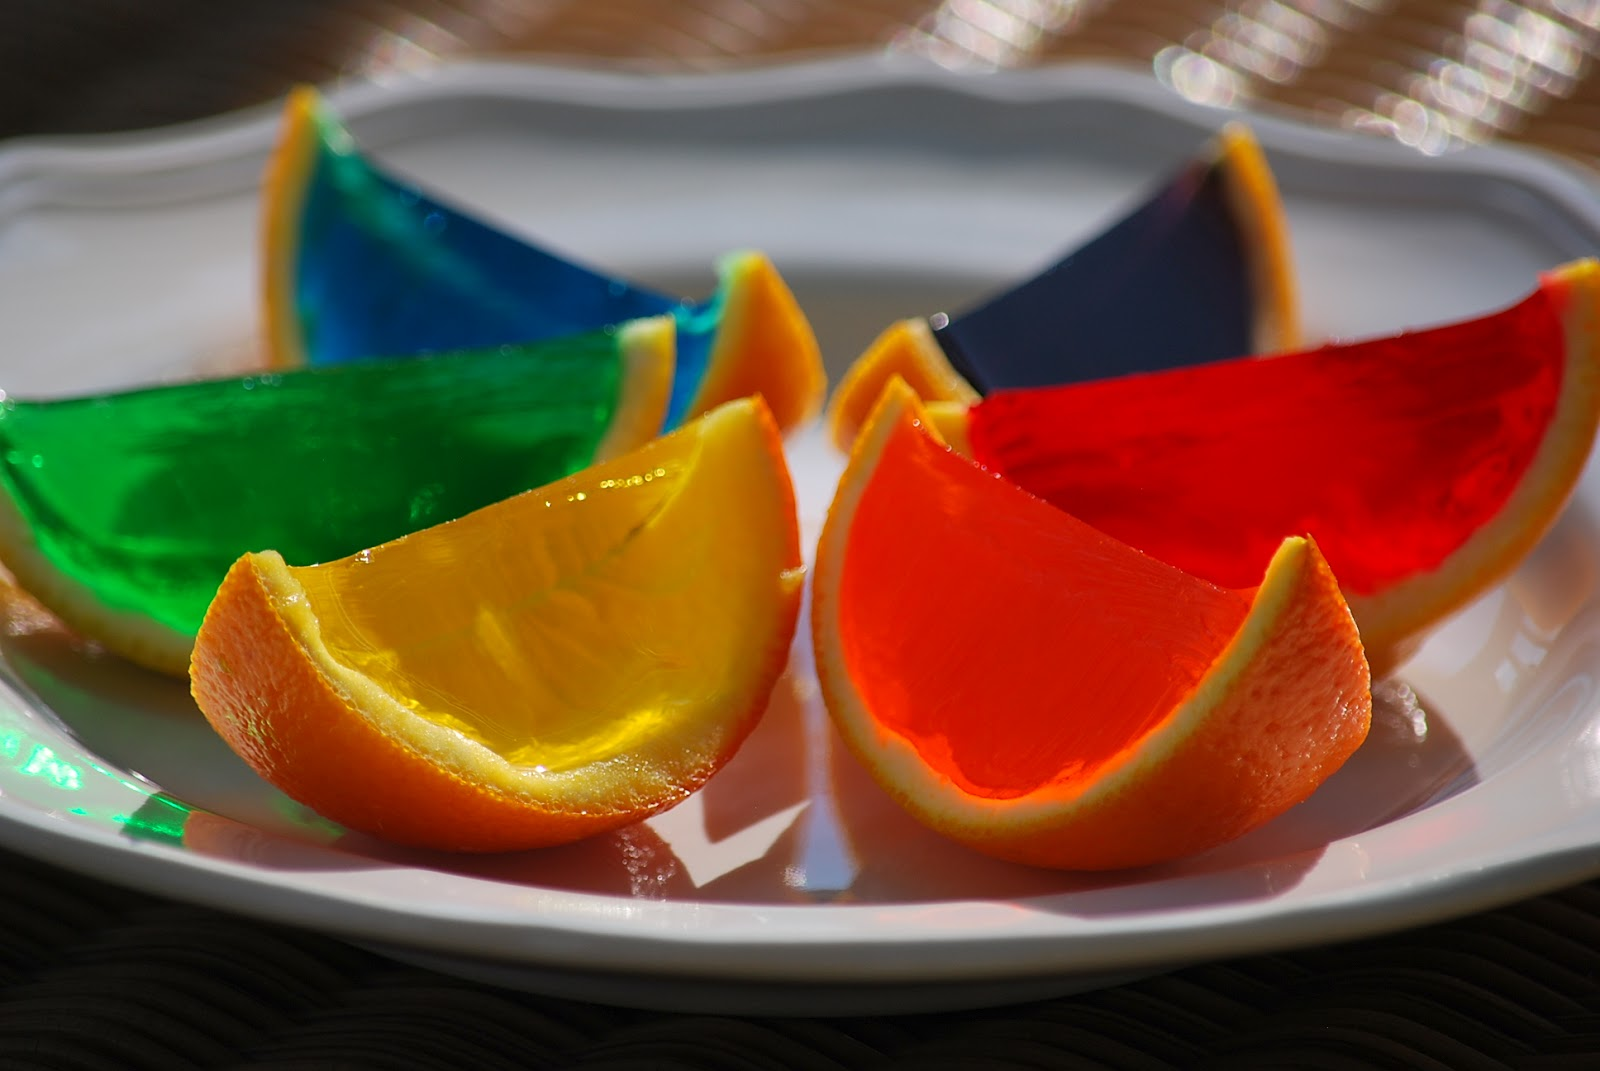 The rainbow gelatin orange wedges were so pretty that I couldn't stop ...